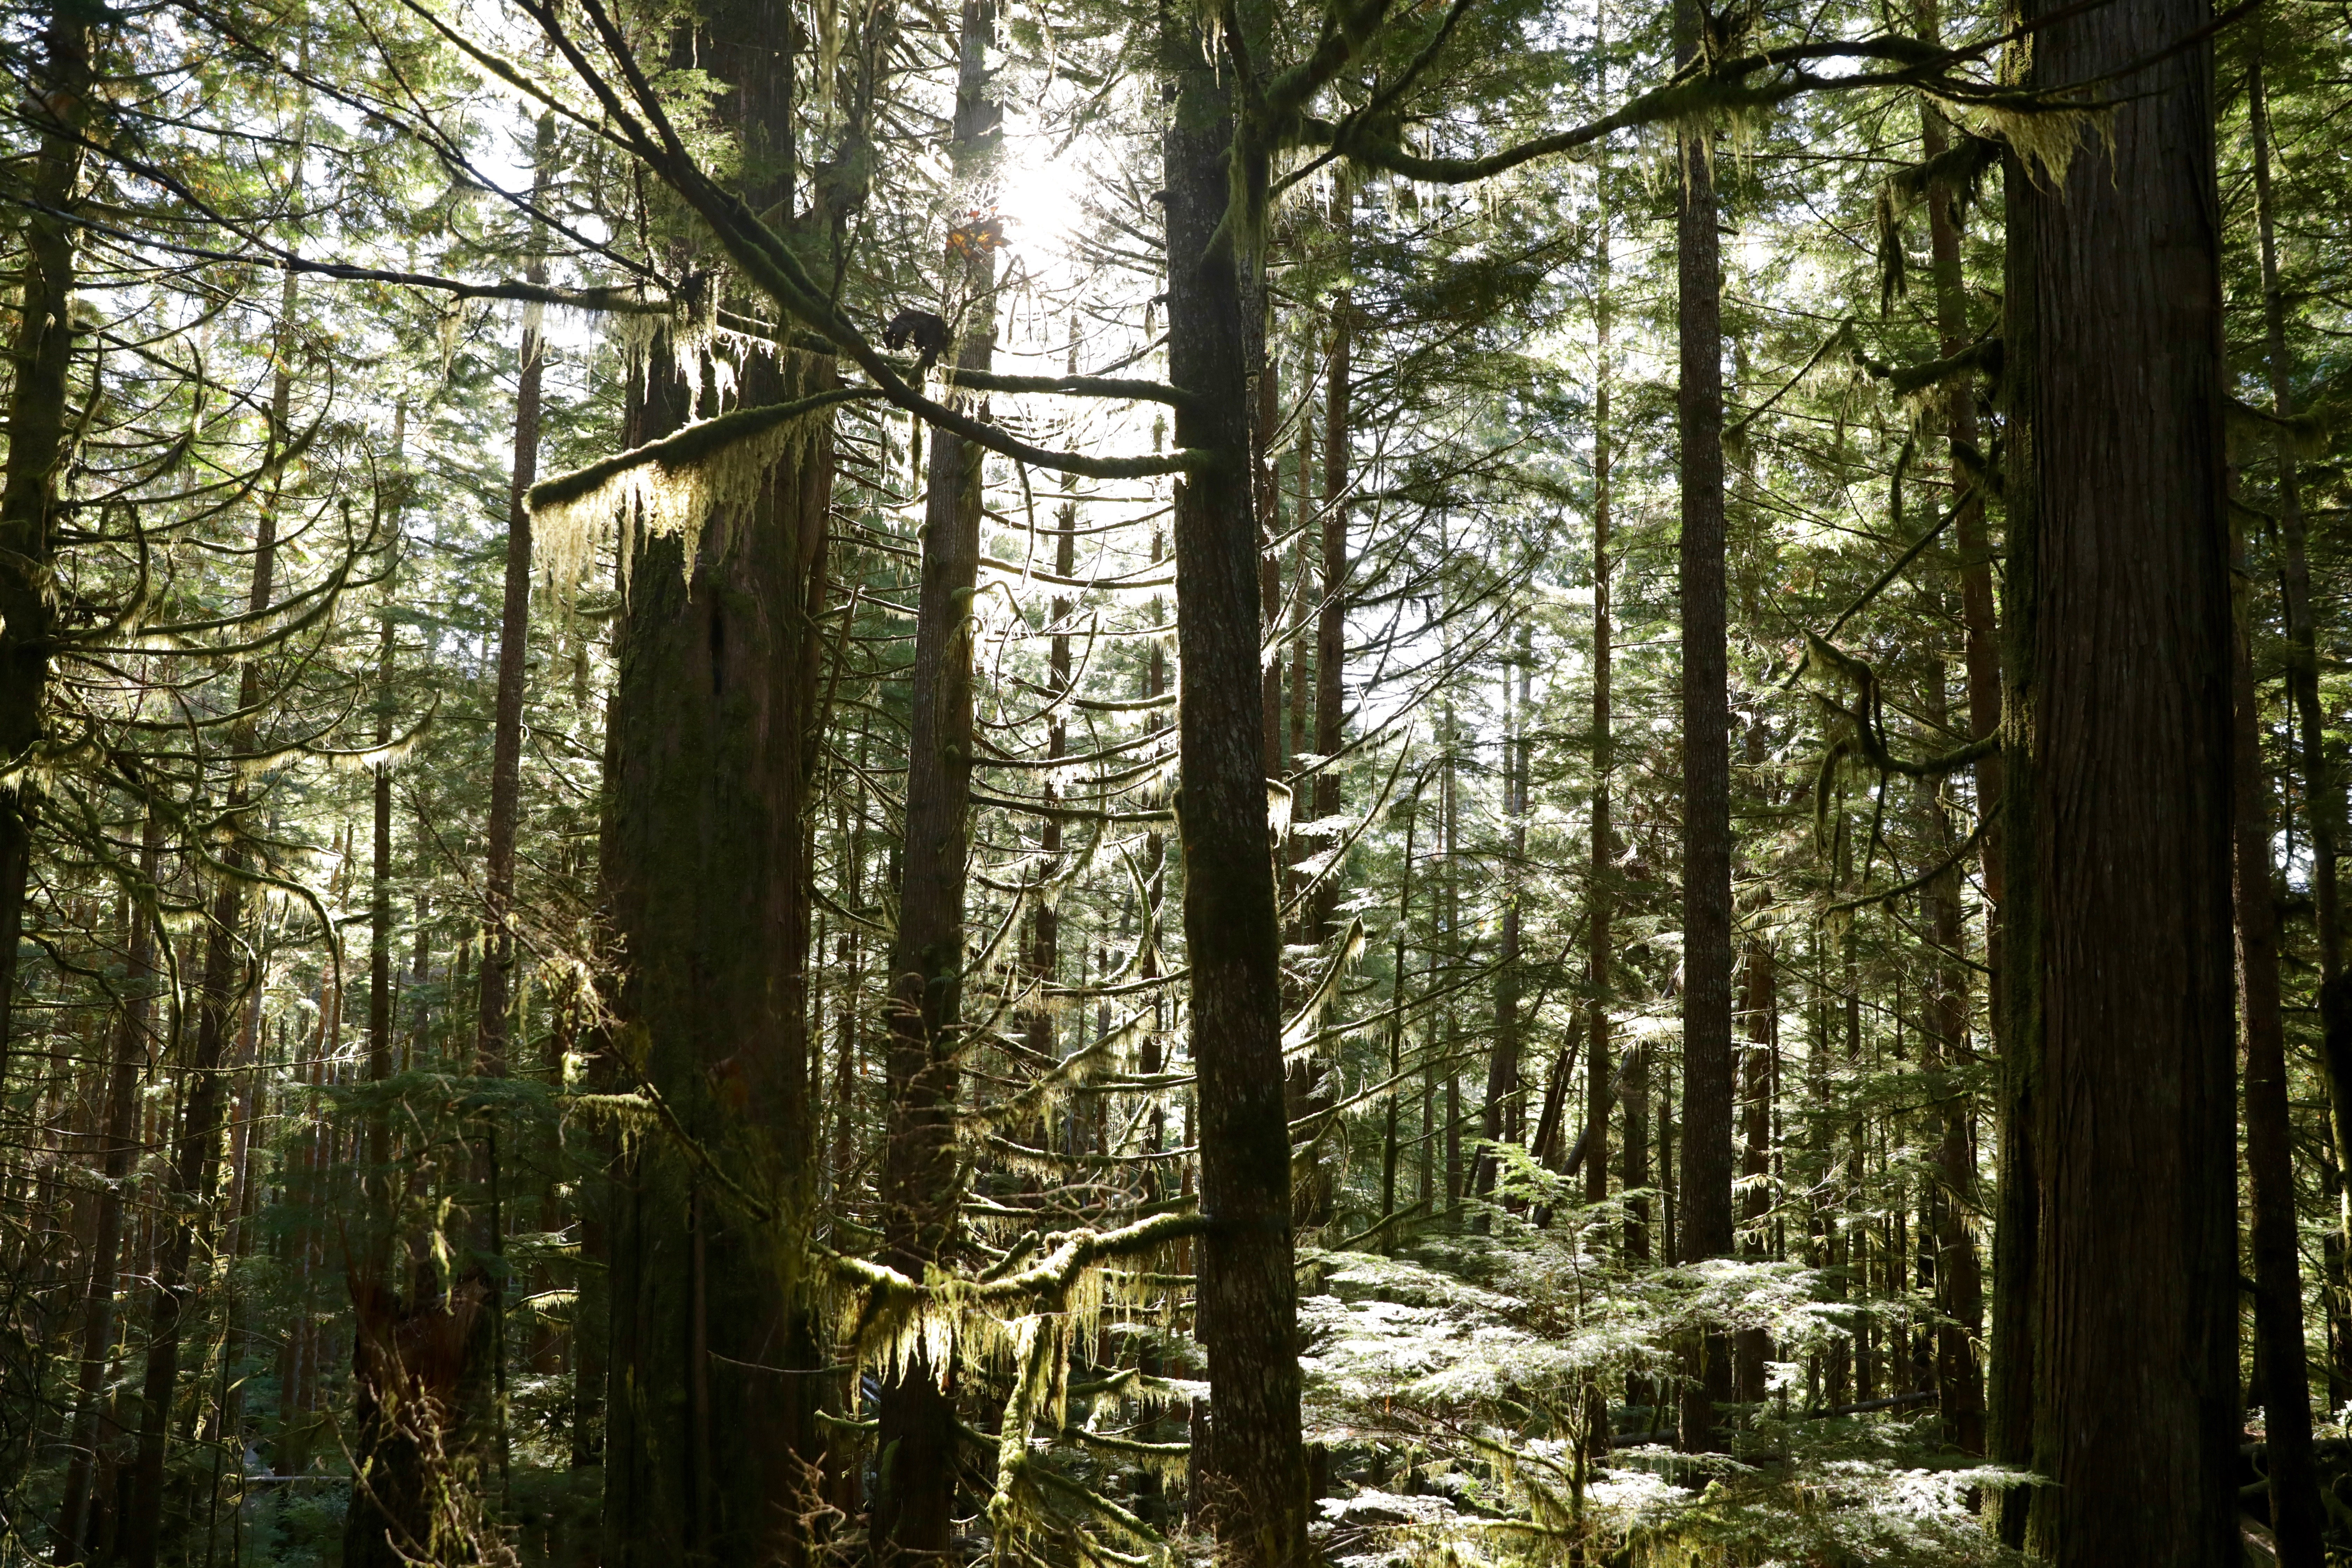 Light shines through the dense forest of Avatar Grove. (Chris Corday/CBC)